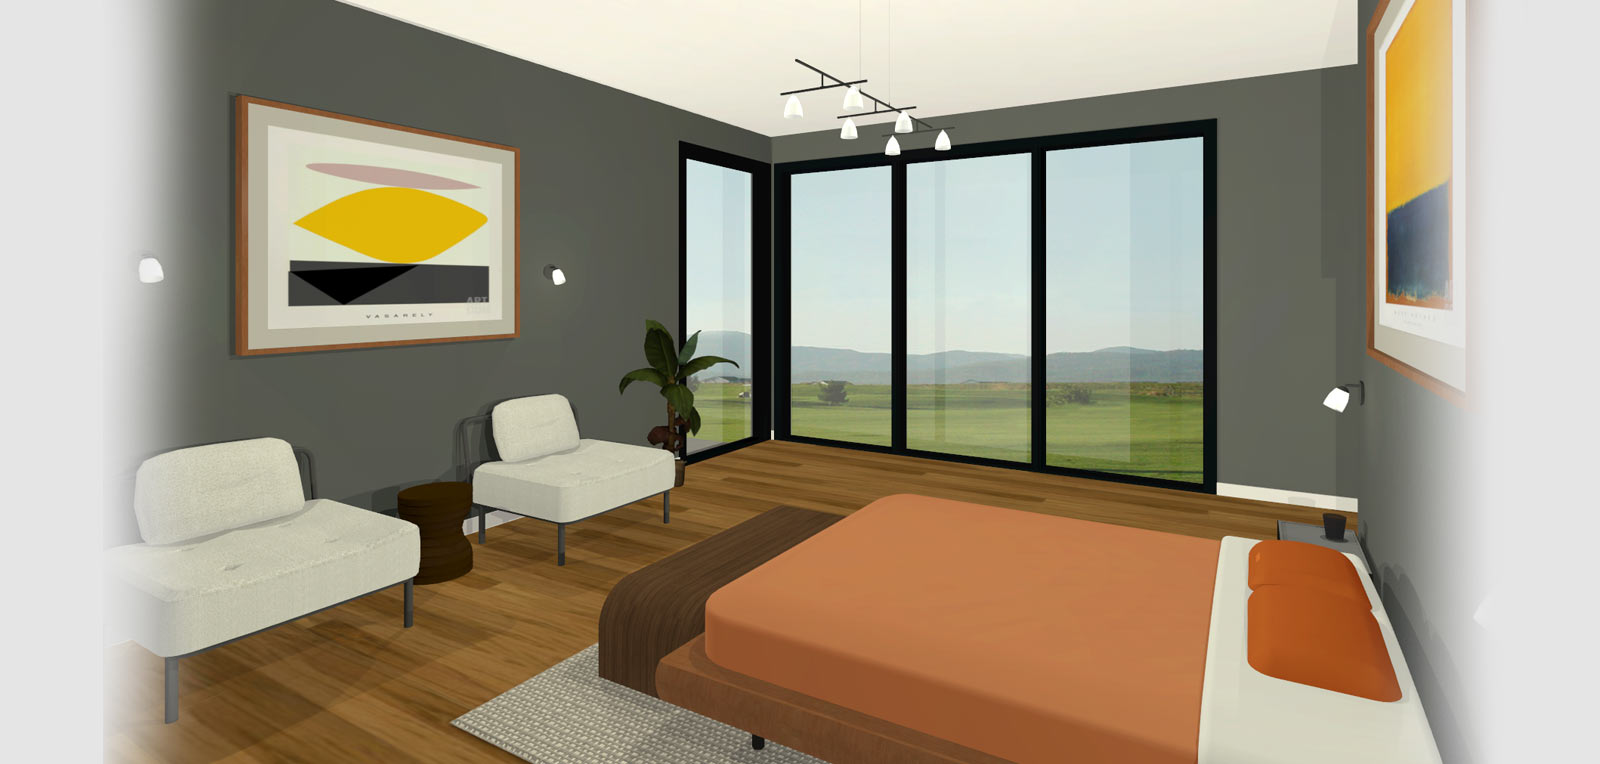 Image gallery home interior design software for Interior designs software free download